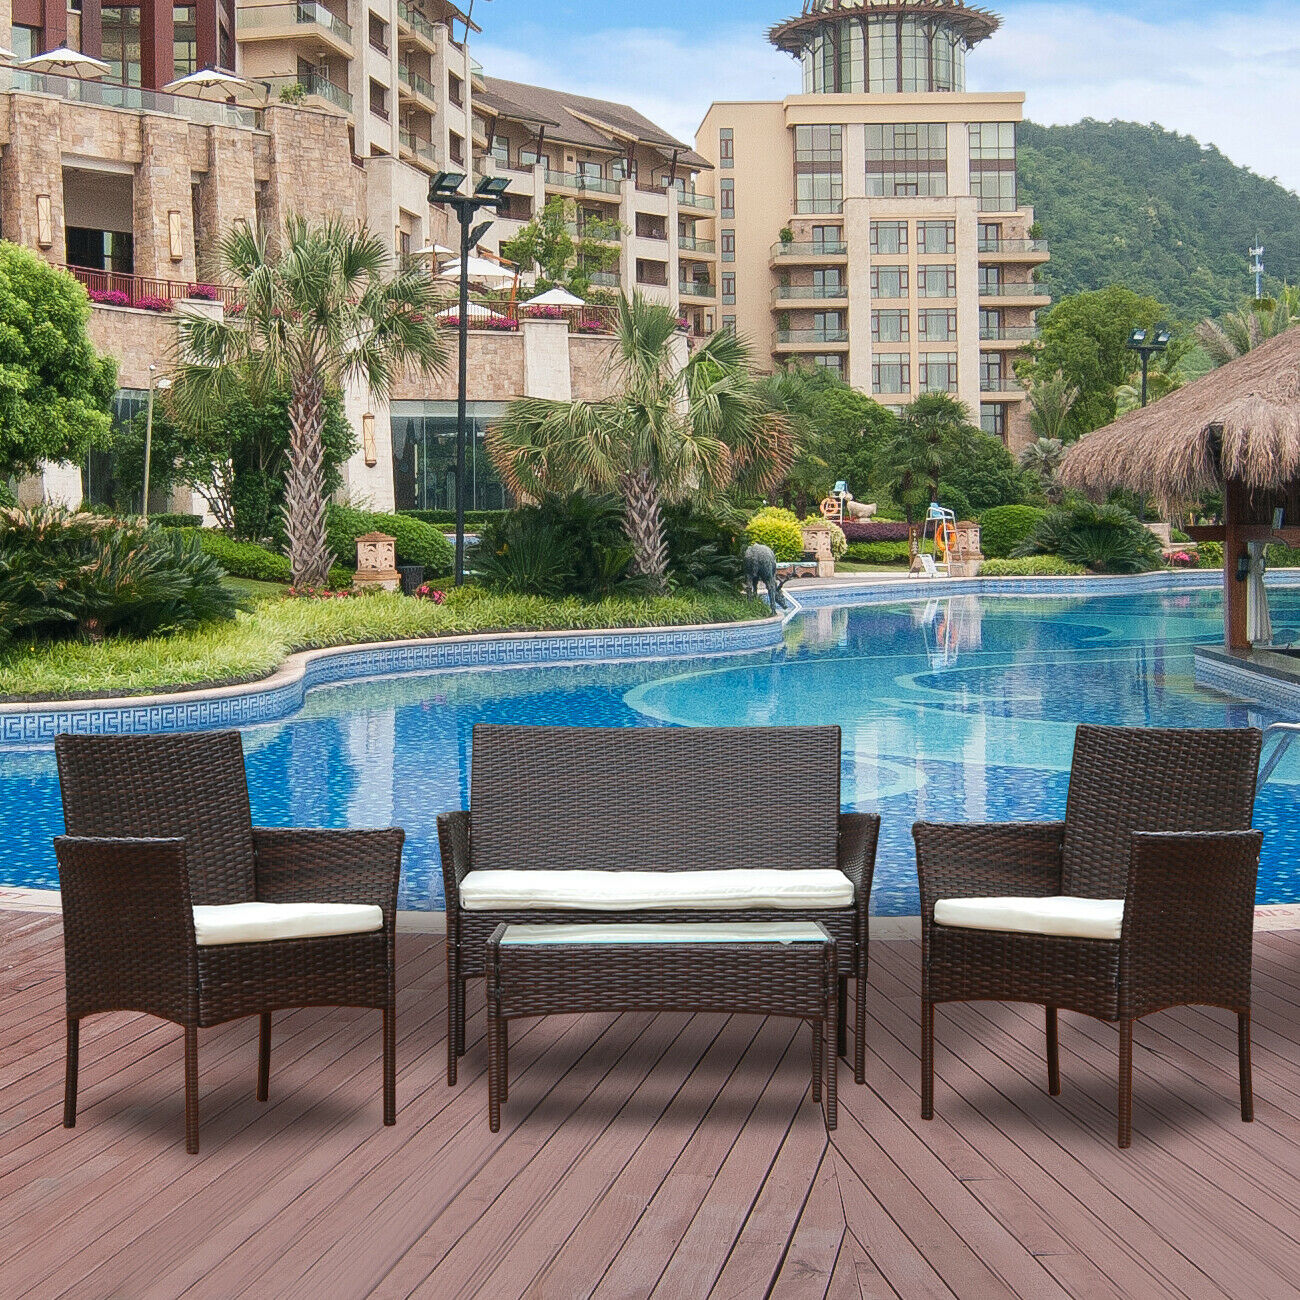 Garden Furniture - 4x Brown Conservatory Rattan Garden Furniture Sofa Chair Table Set Patio Outdoor